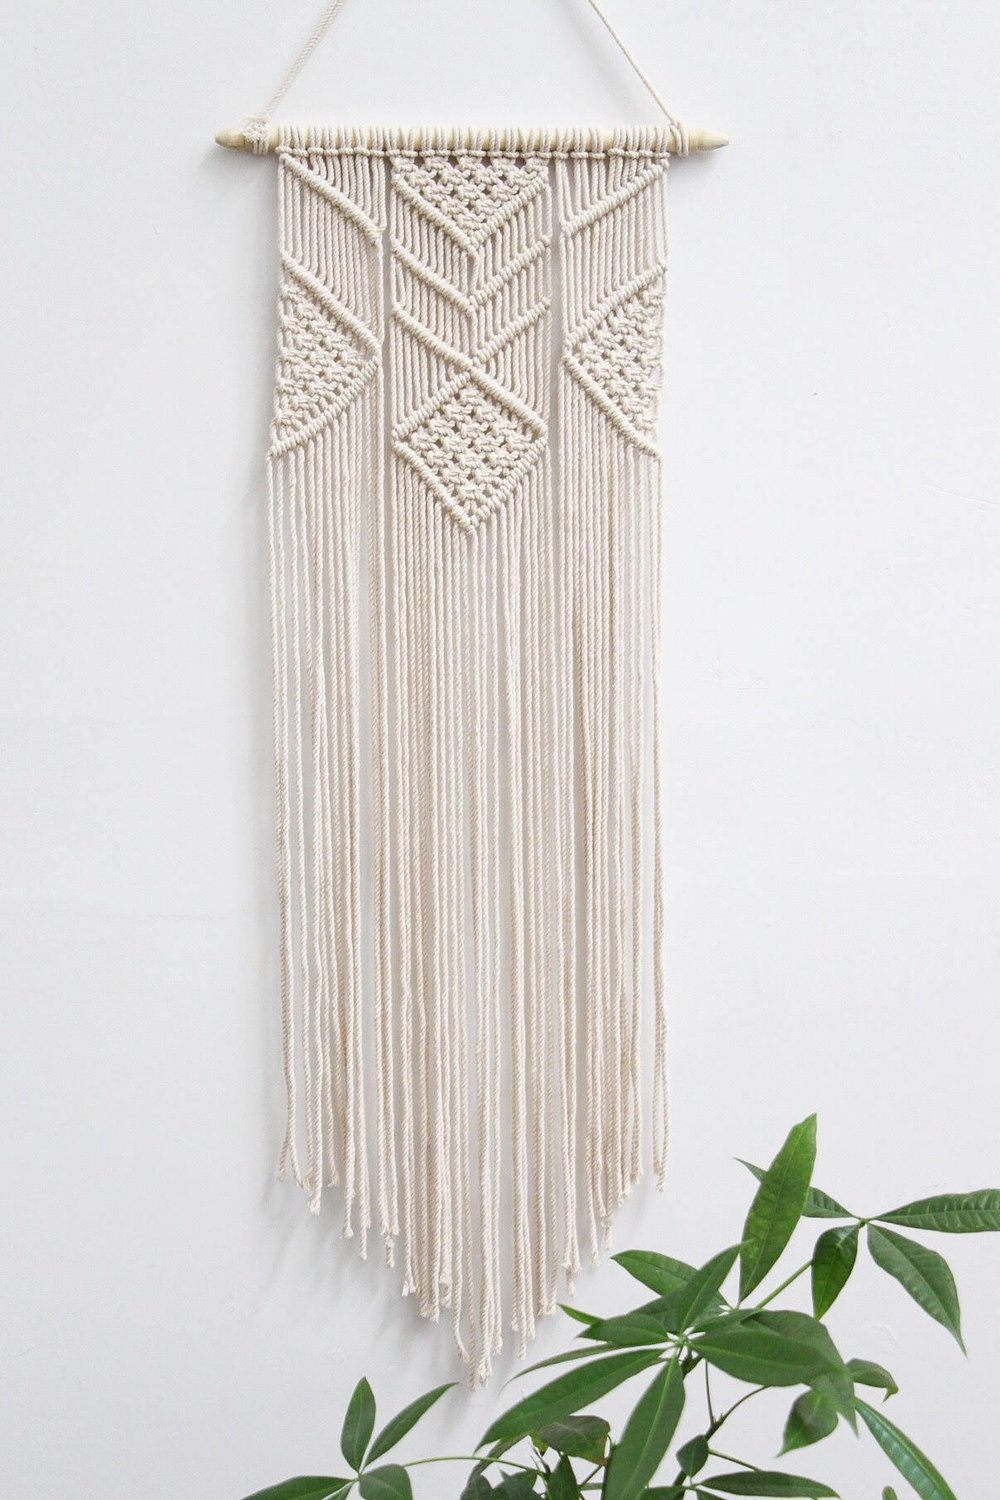 Macrame Wall Hanging By Hazel Candle Co